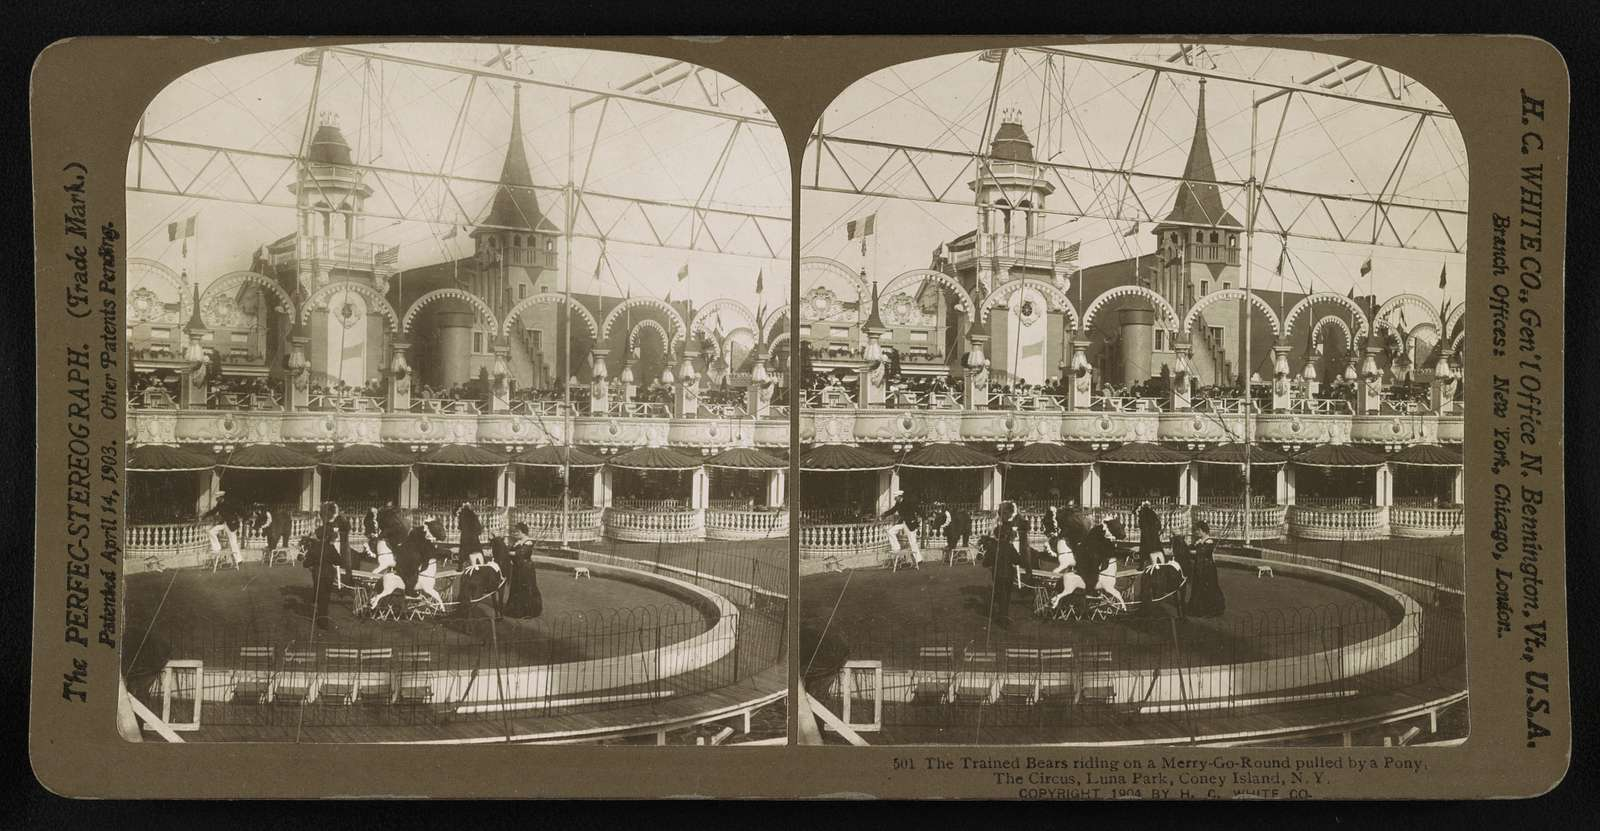 The trained bears riding on a Merry-Go-Round pulled by a pony. The Circus, Coney Island Island, New York